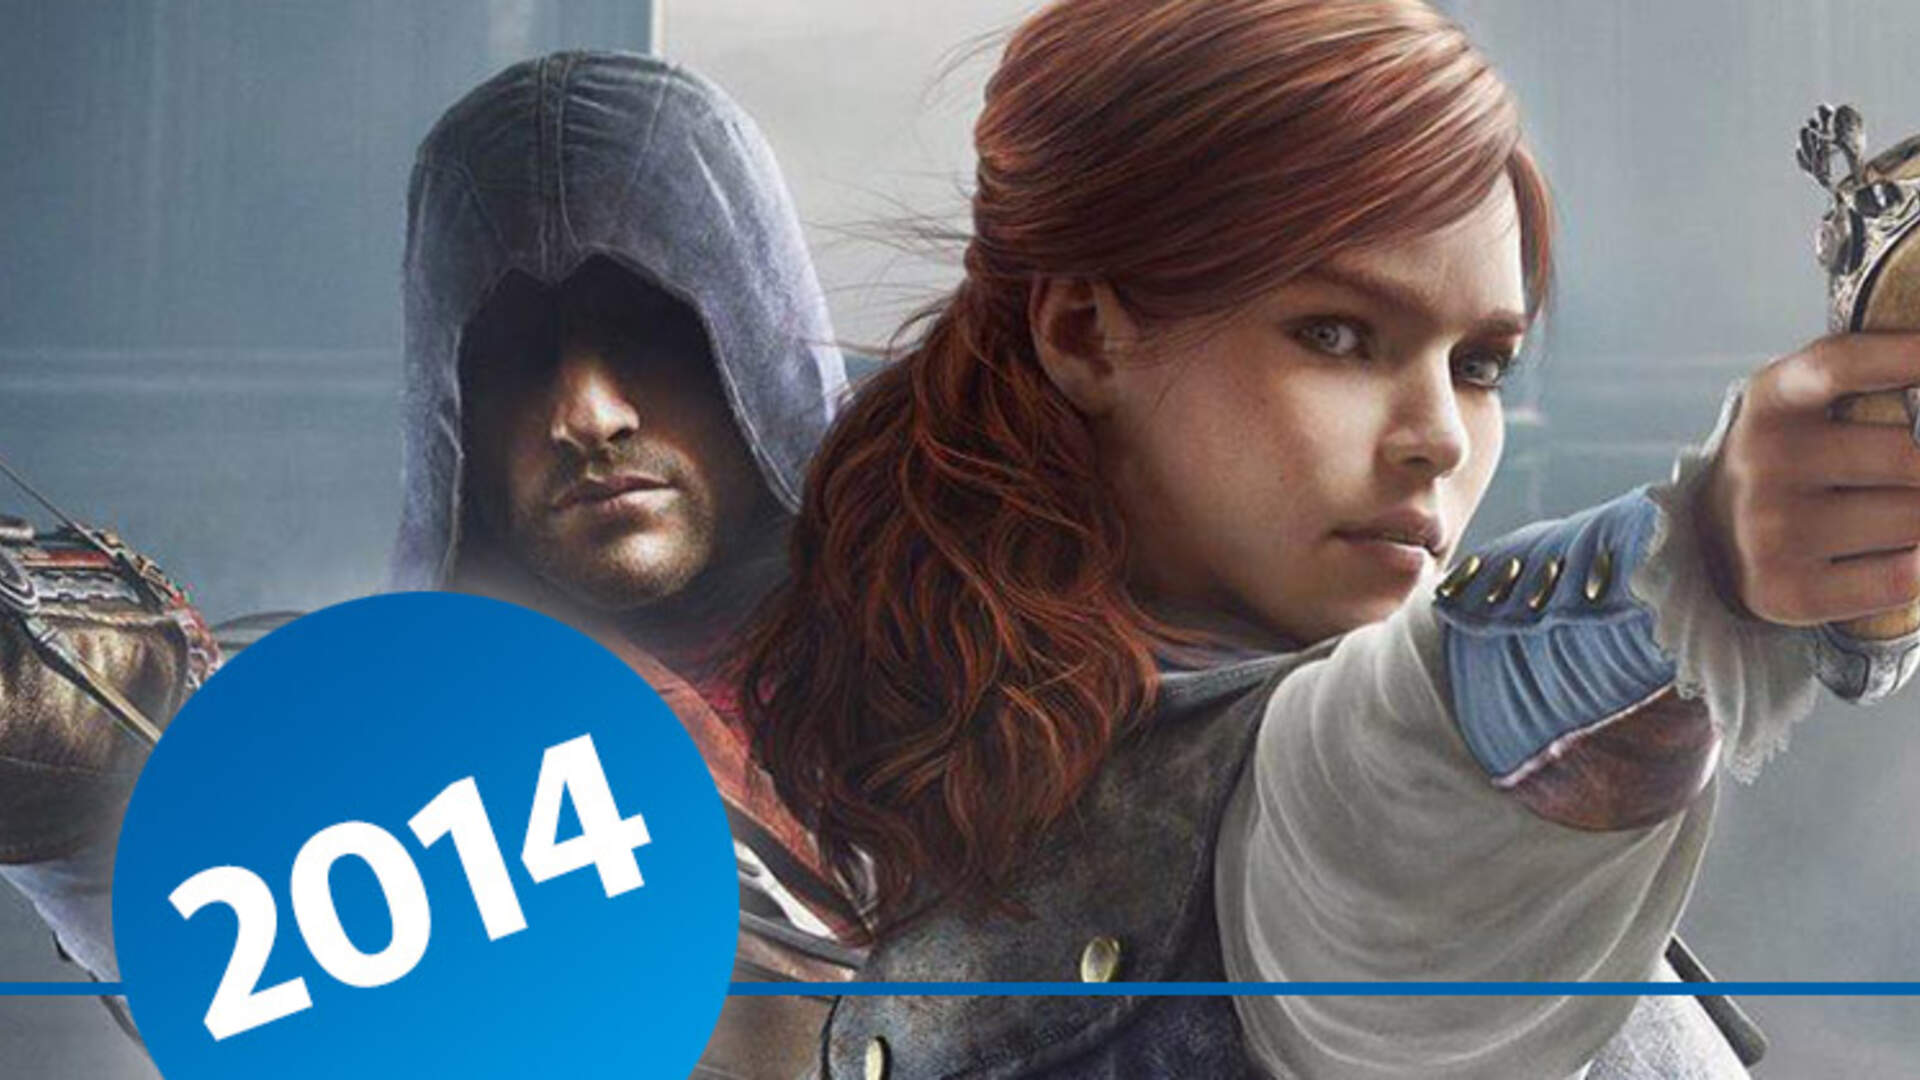 2014 Recap: Why Won't You Let Me Love You, Assassin's Creed?